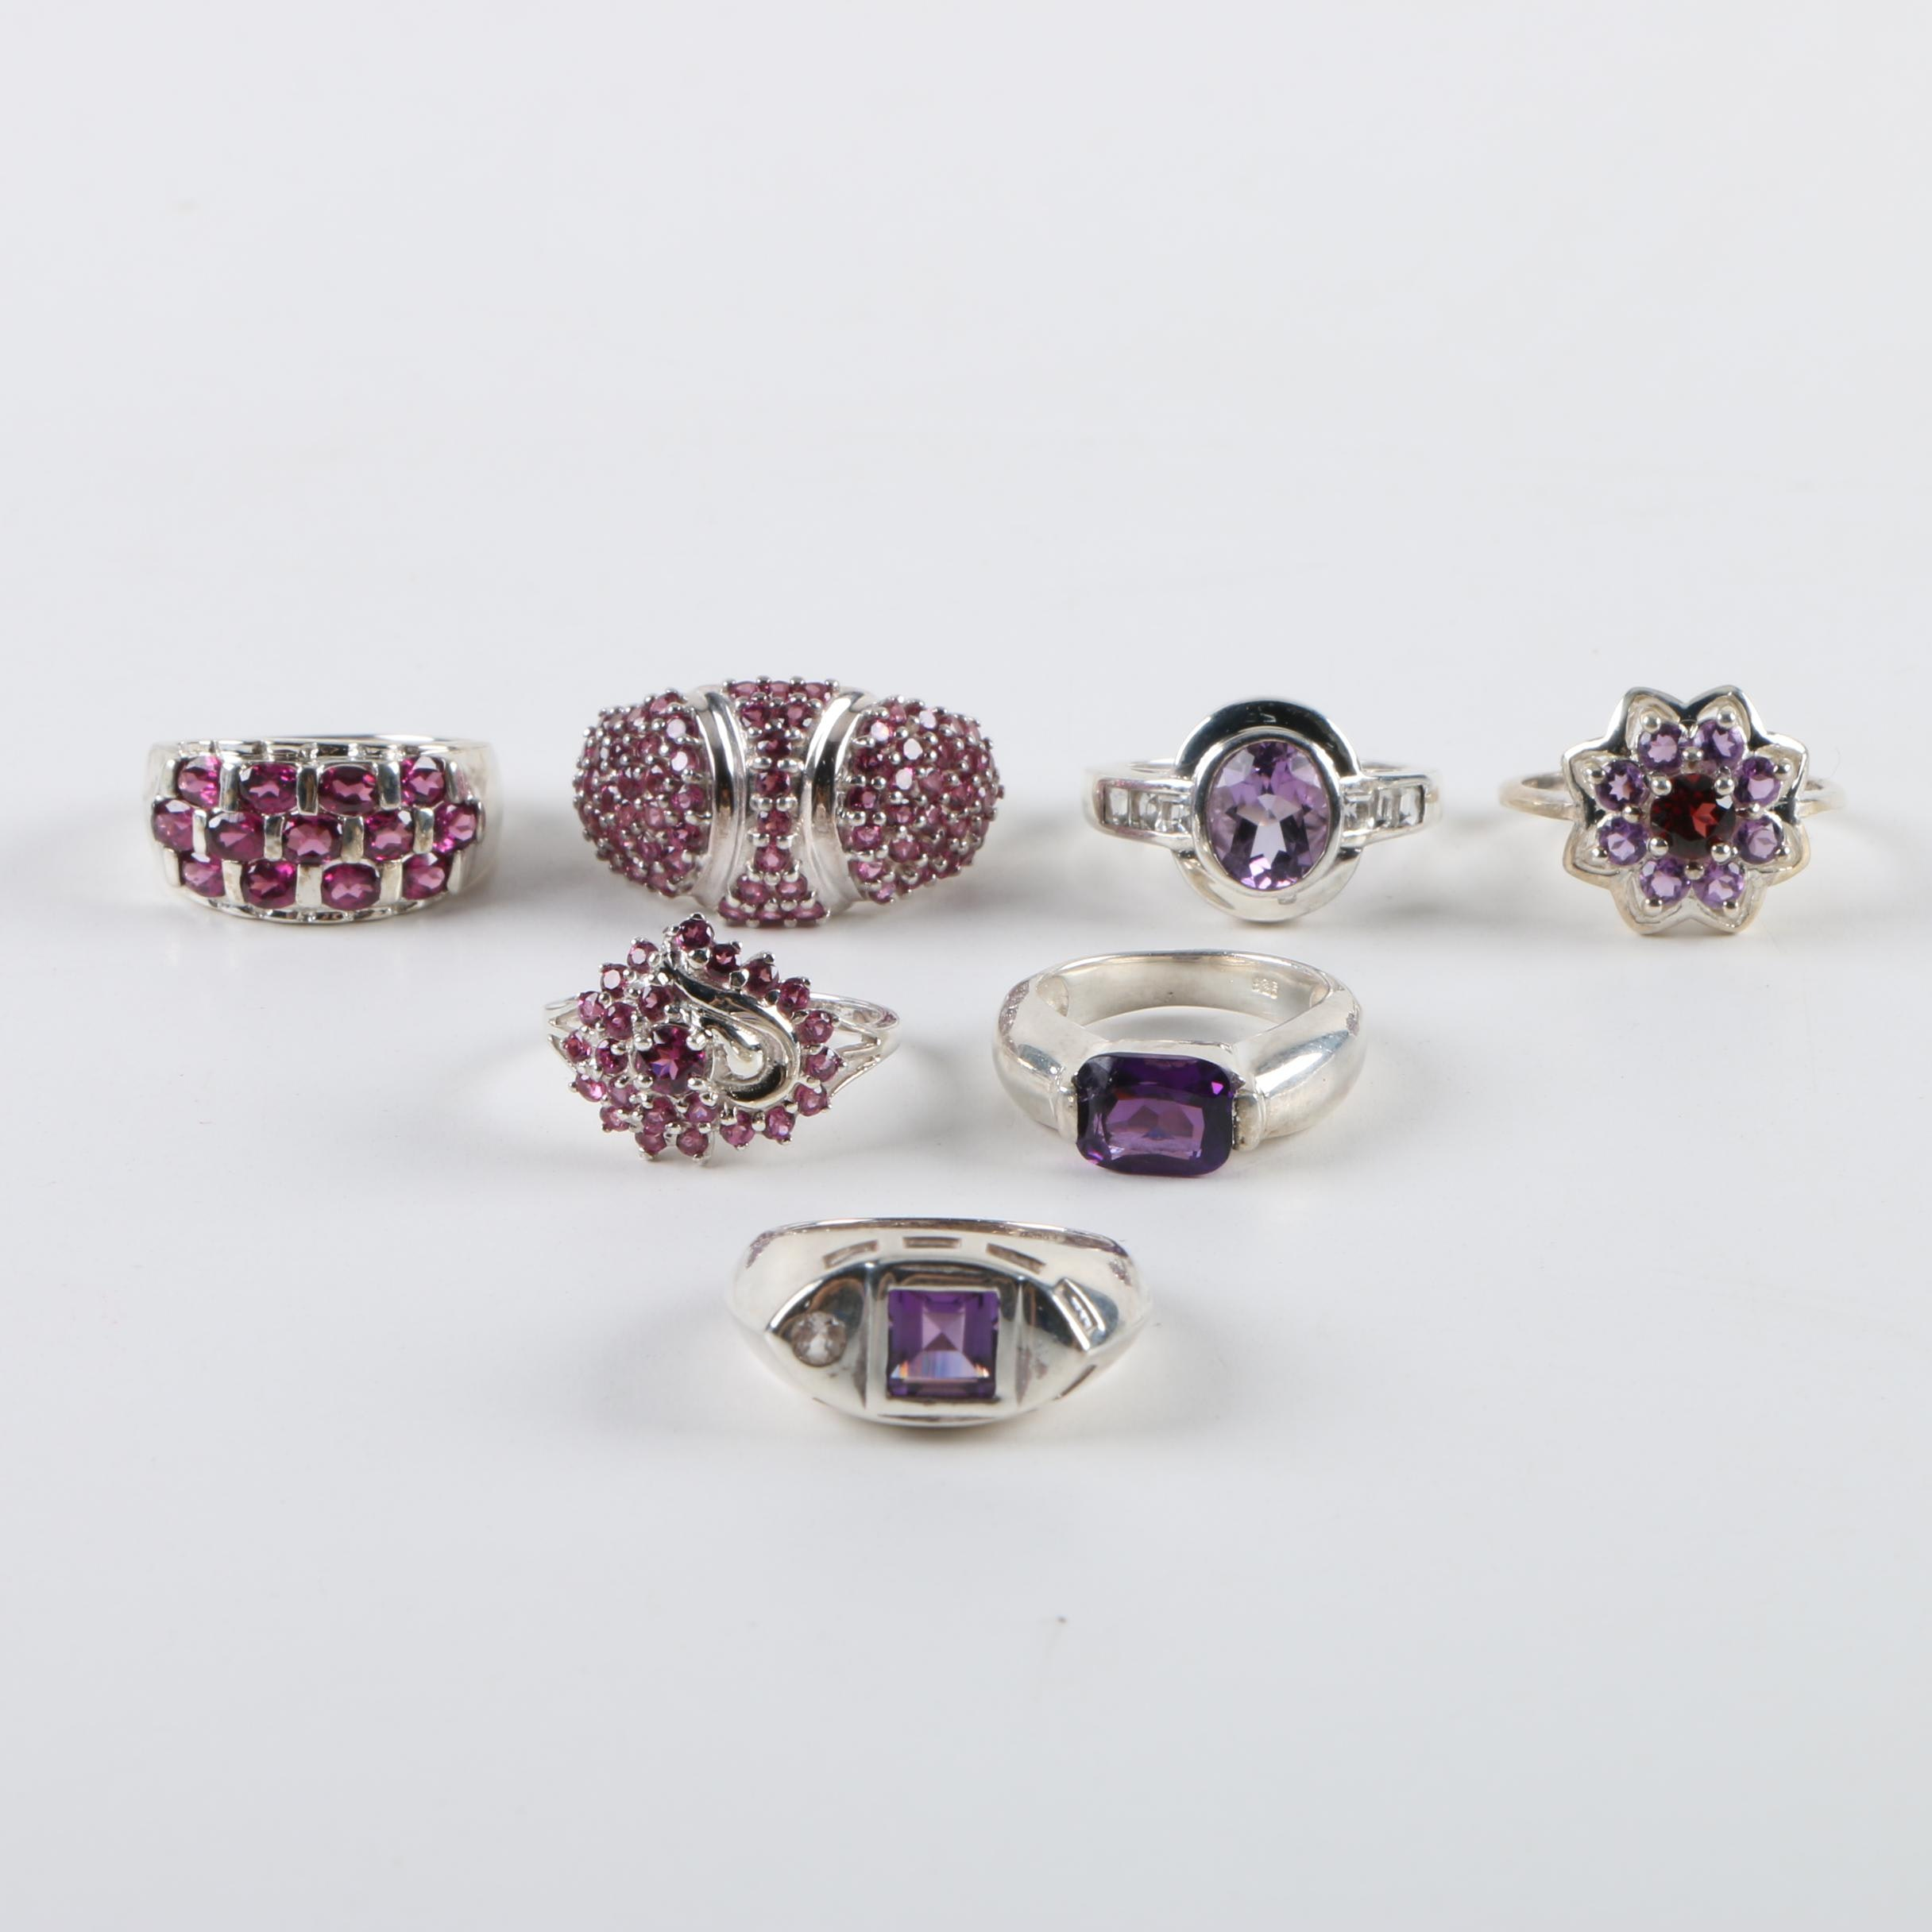 Sterling Silver Ring Assortment Including Amethyst and Rhodolite Garnet